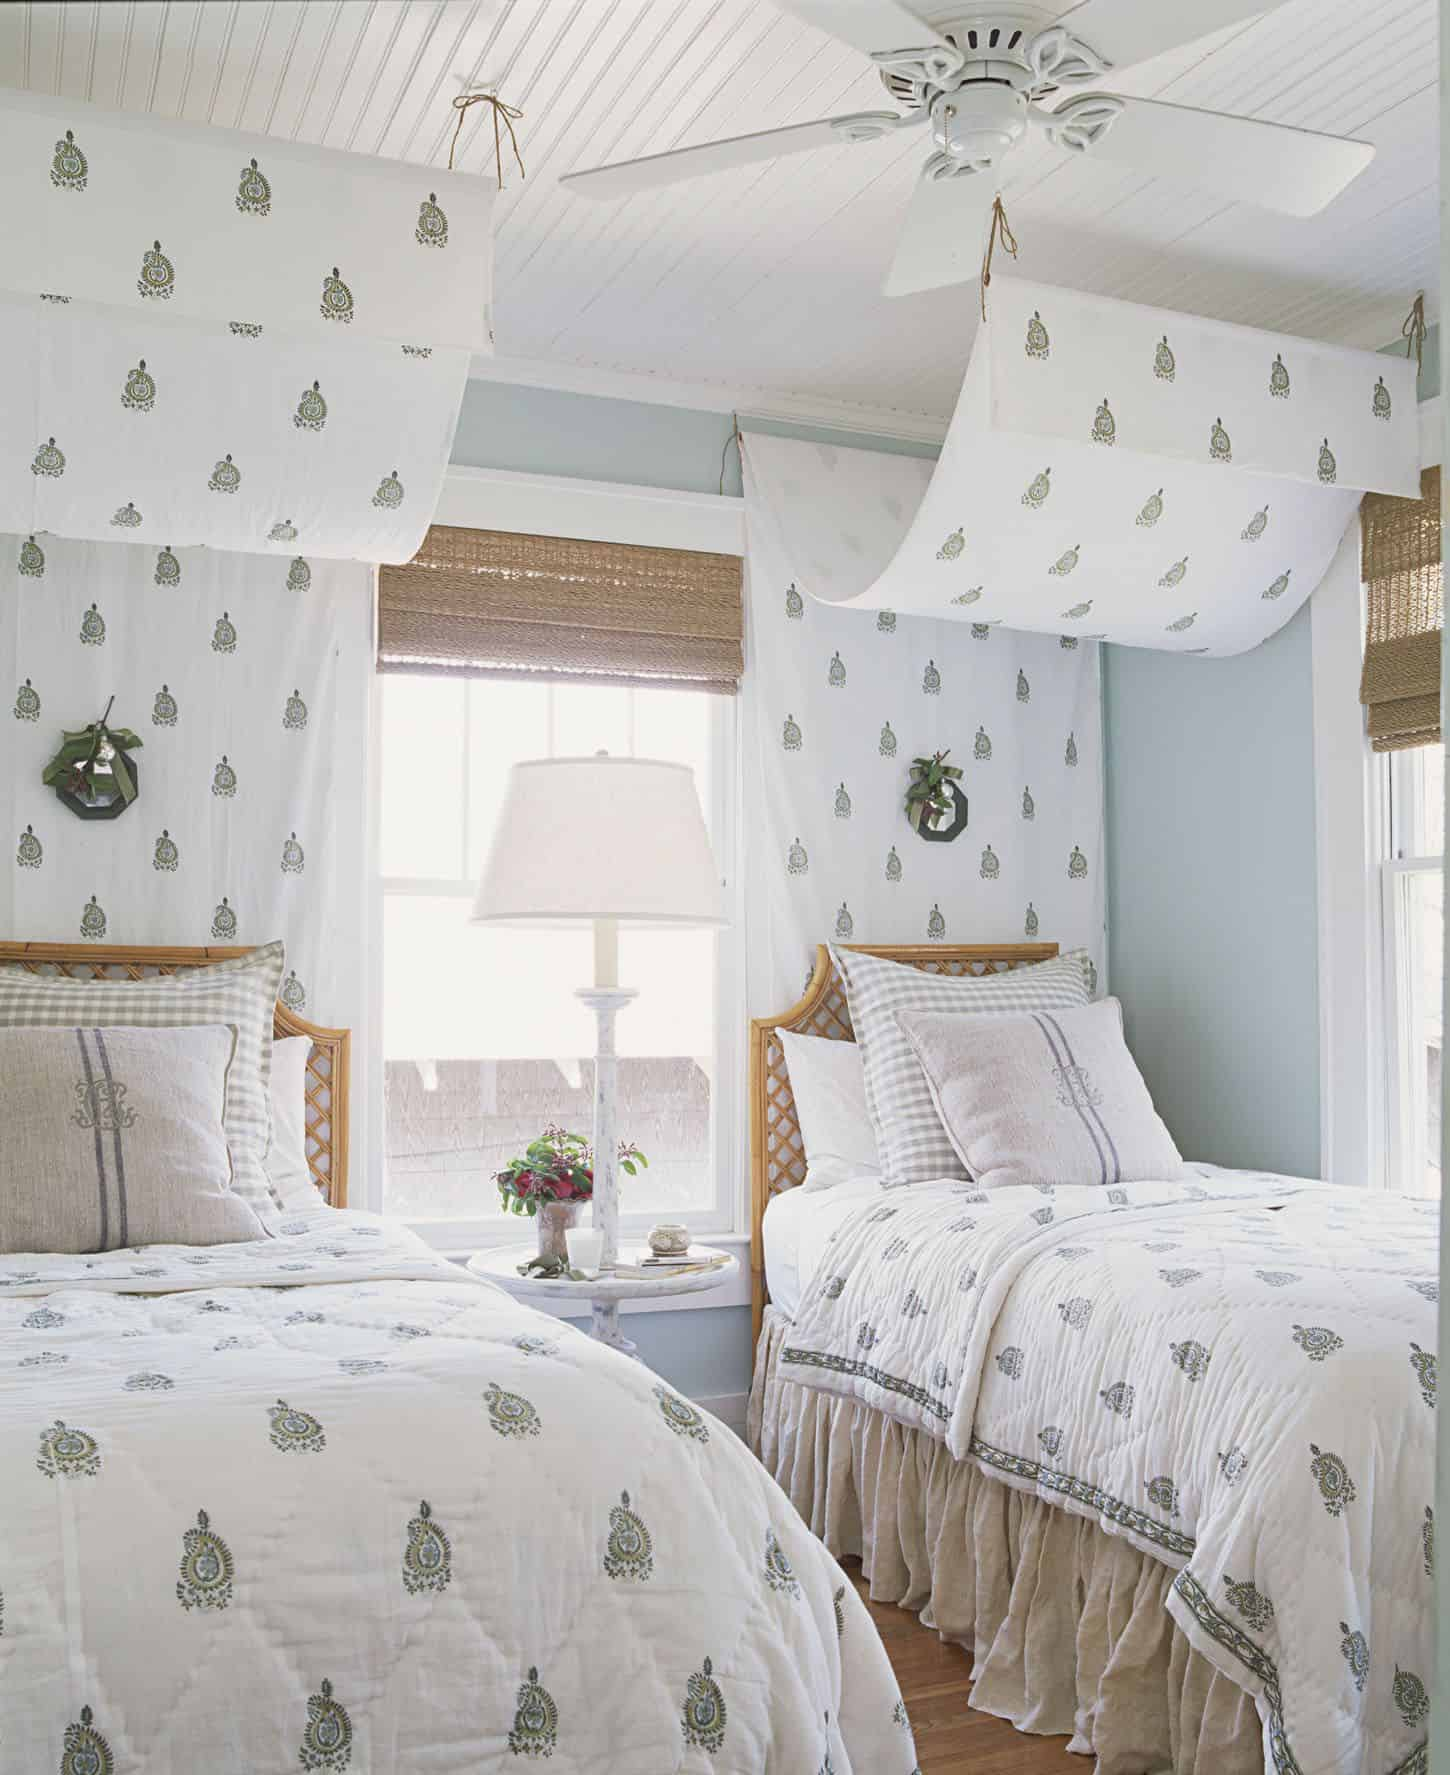 Guest Bedroom Designs: Sophisticated Guest Room Ideas That Will Make Your Guests